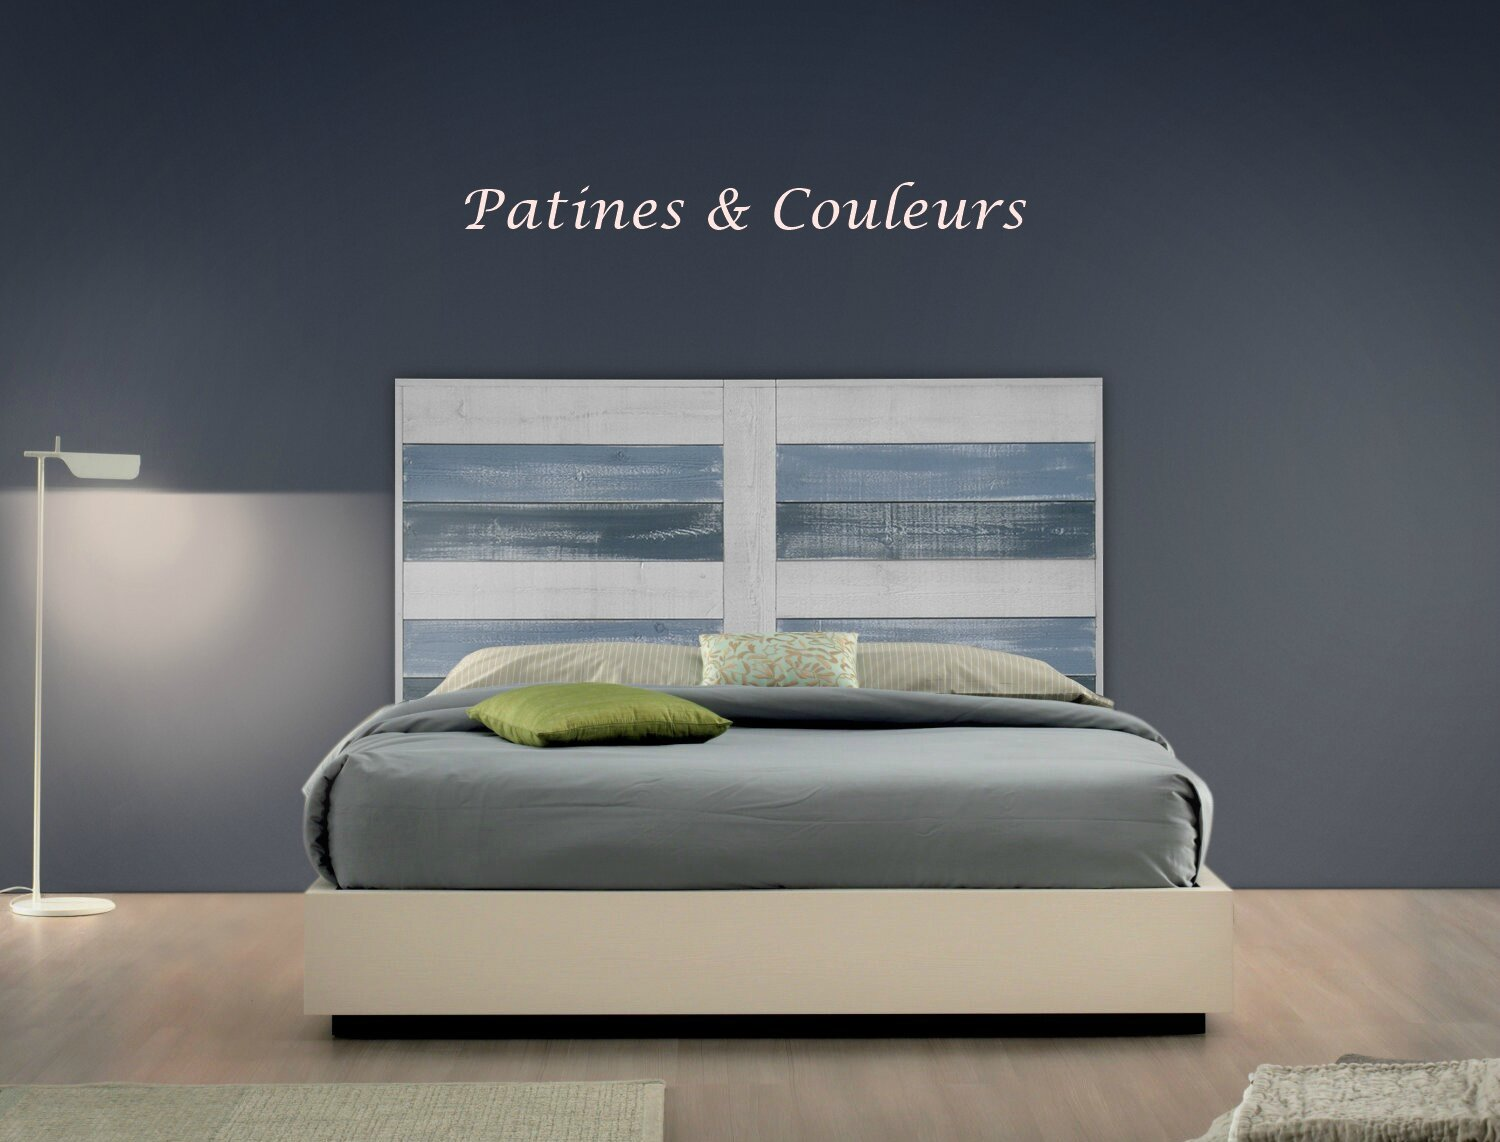 nouveaut t te de lit bord de mer patines couleurs. Black Bedroom Furniture Sets. Home Design Ideas